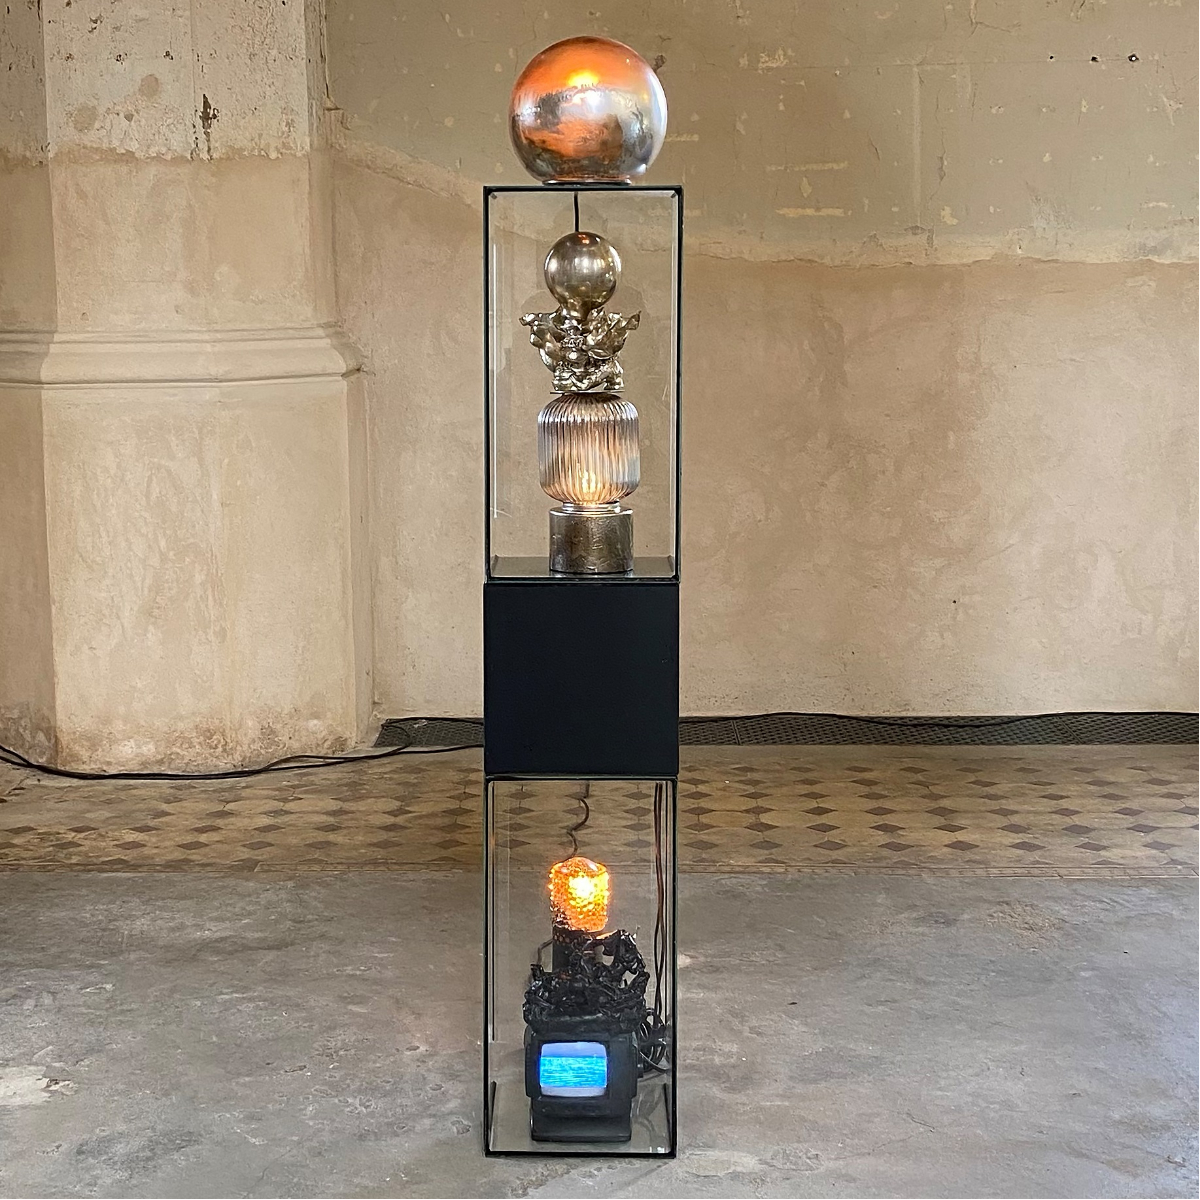 TRUTH LAMP, 2021, mixed media Points of Resistance @Zionskirche